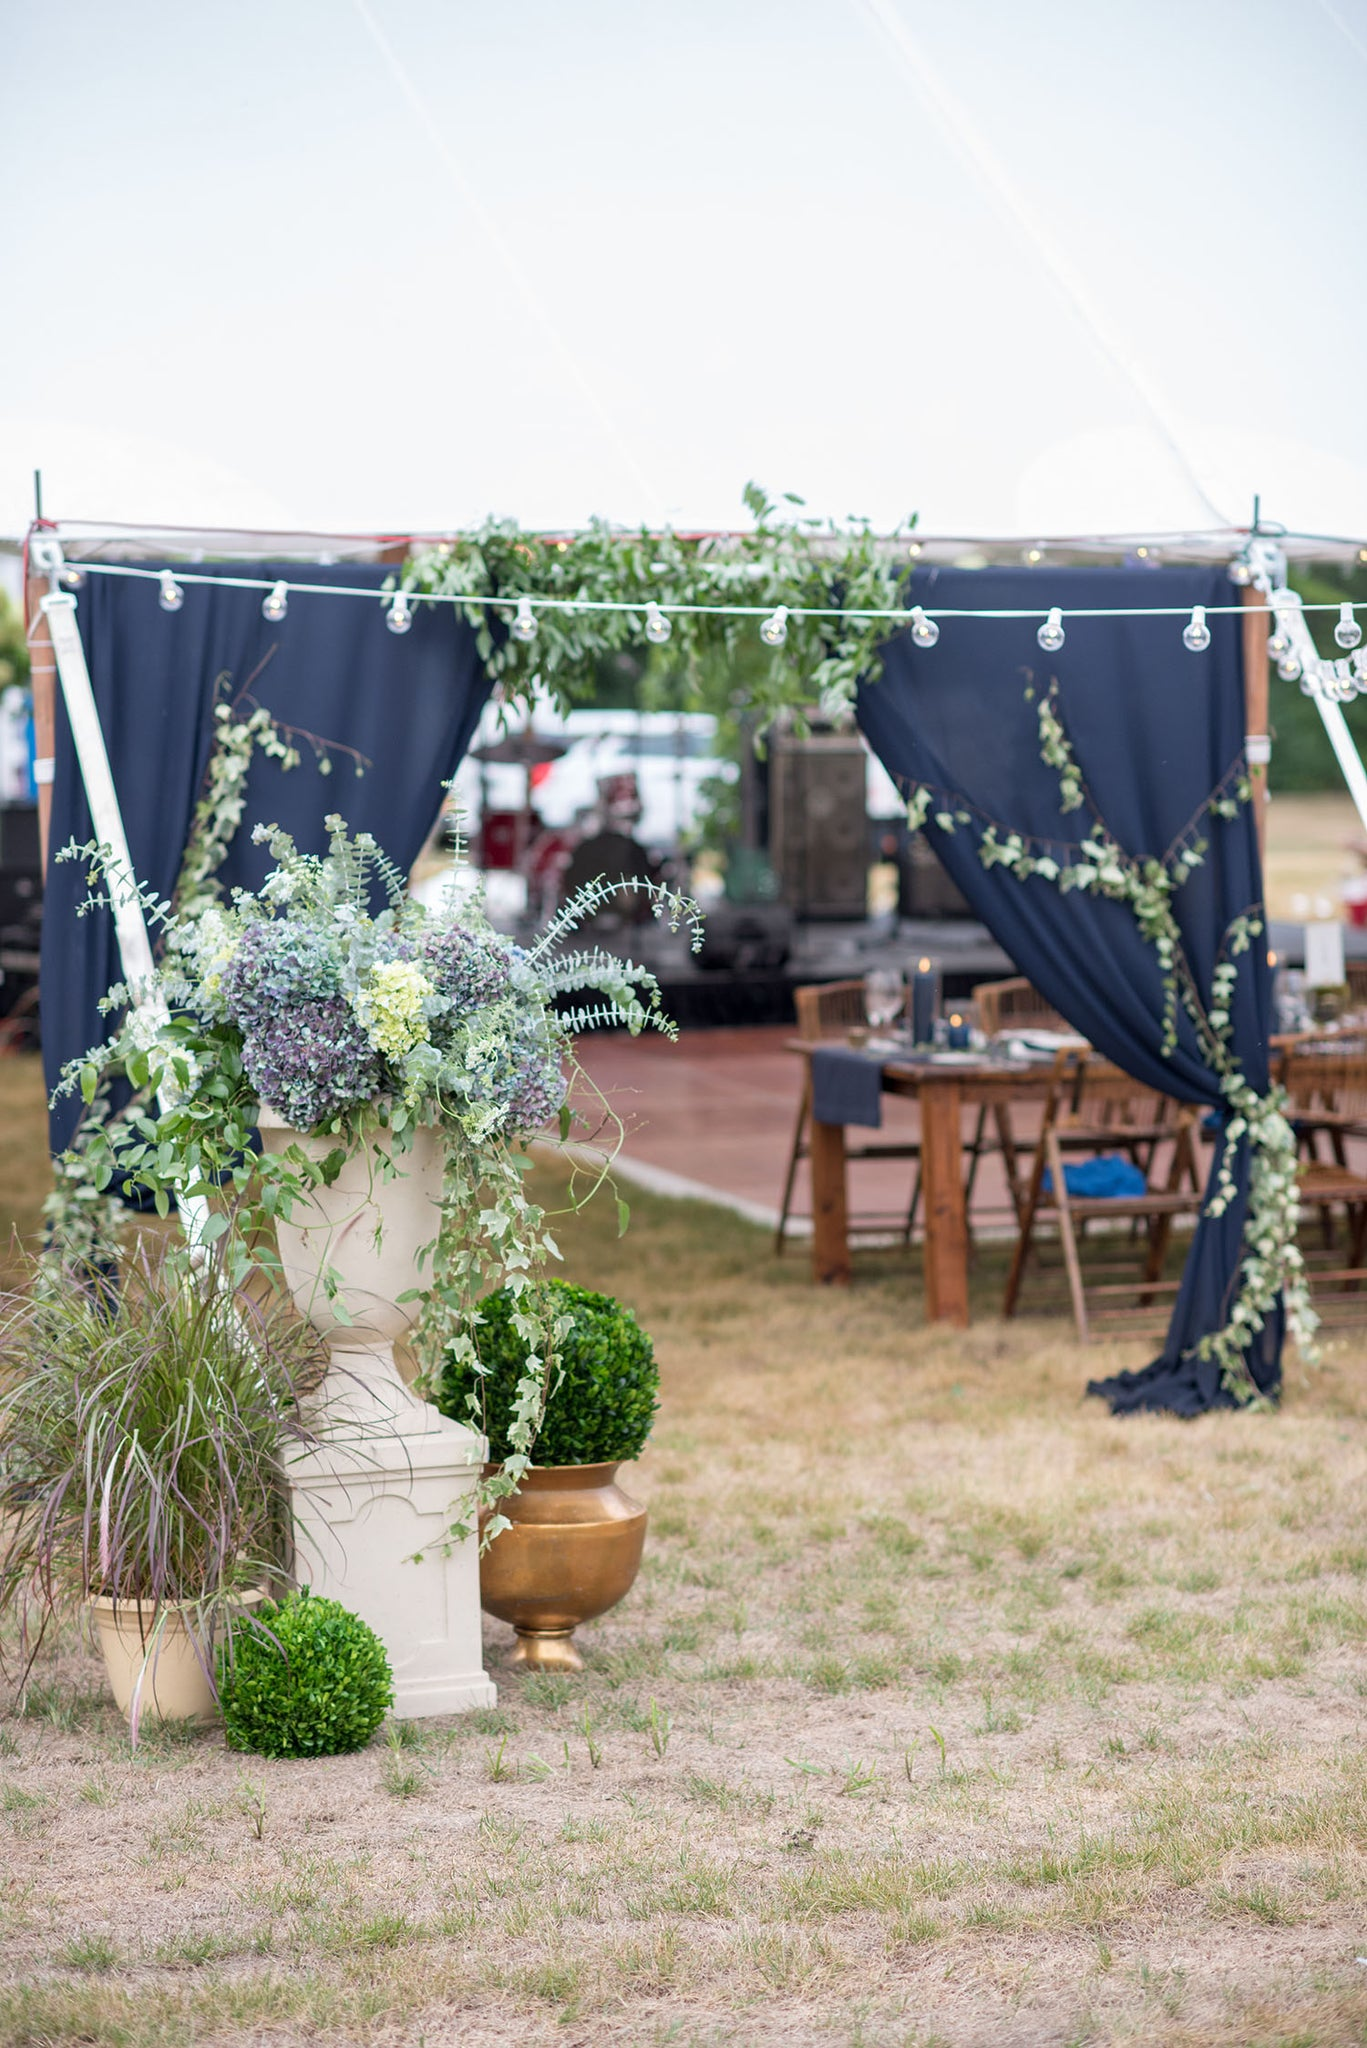 wedding tent entry with urns of flowers